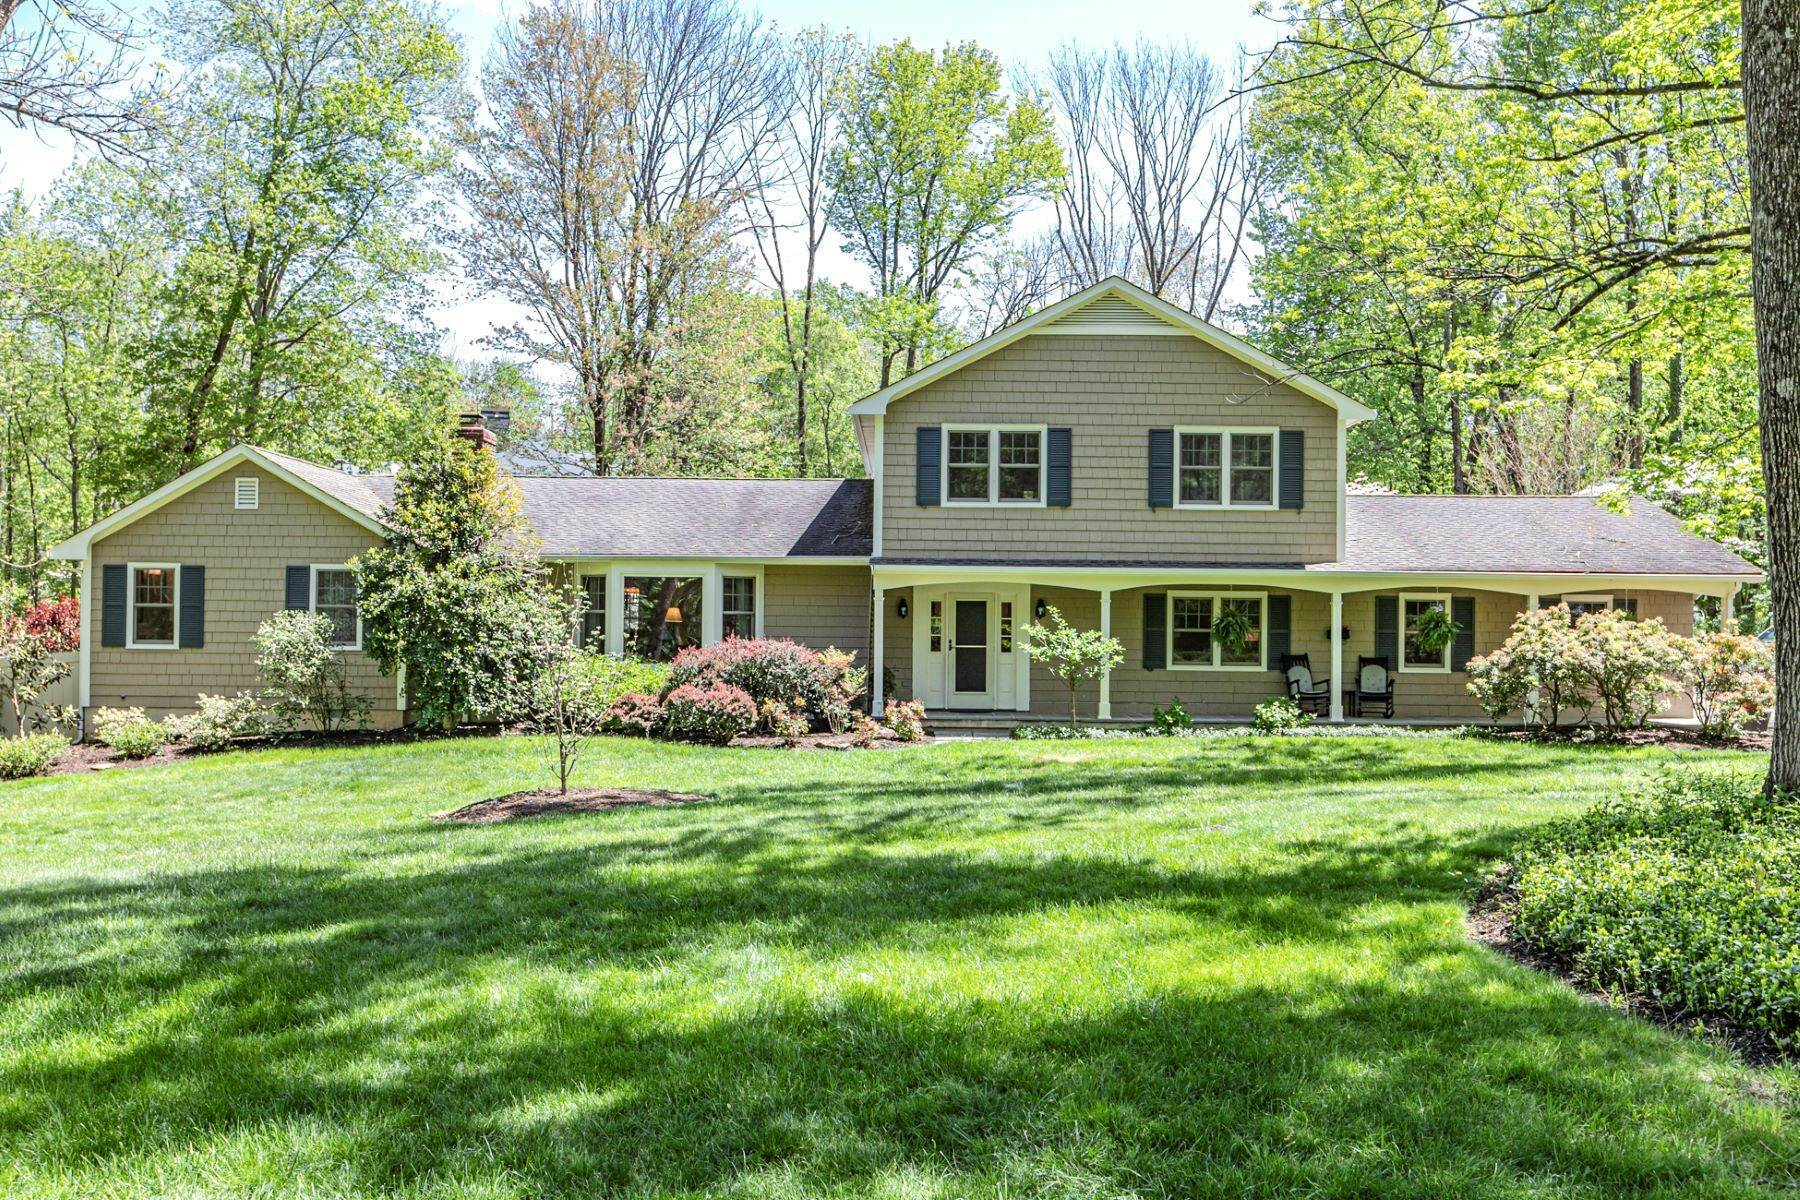 Single Family Homes for Sale at Expansive Colonial with Pool in a Serene Setting 38 Crooked Tree Lane, Princeton, New Jersey 08540 United States